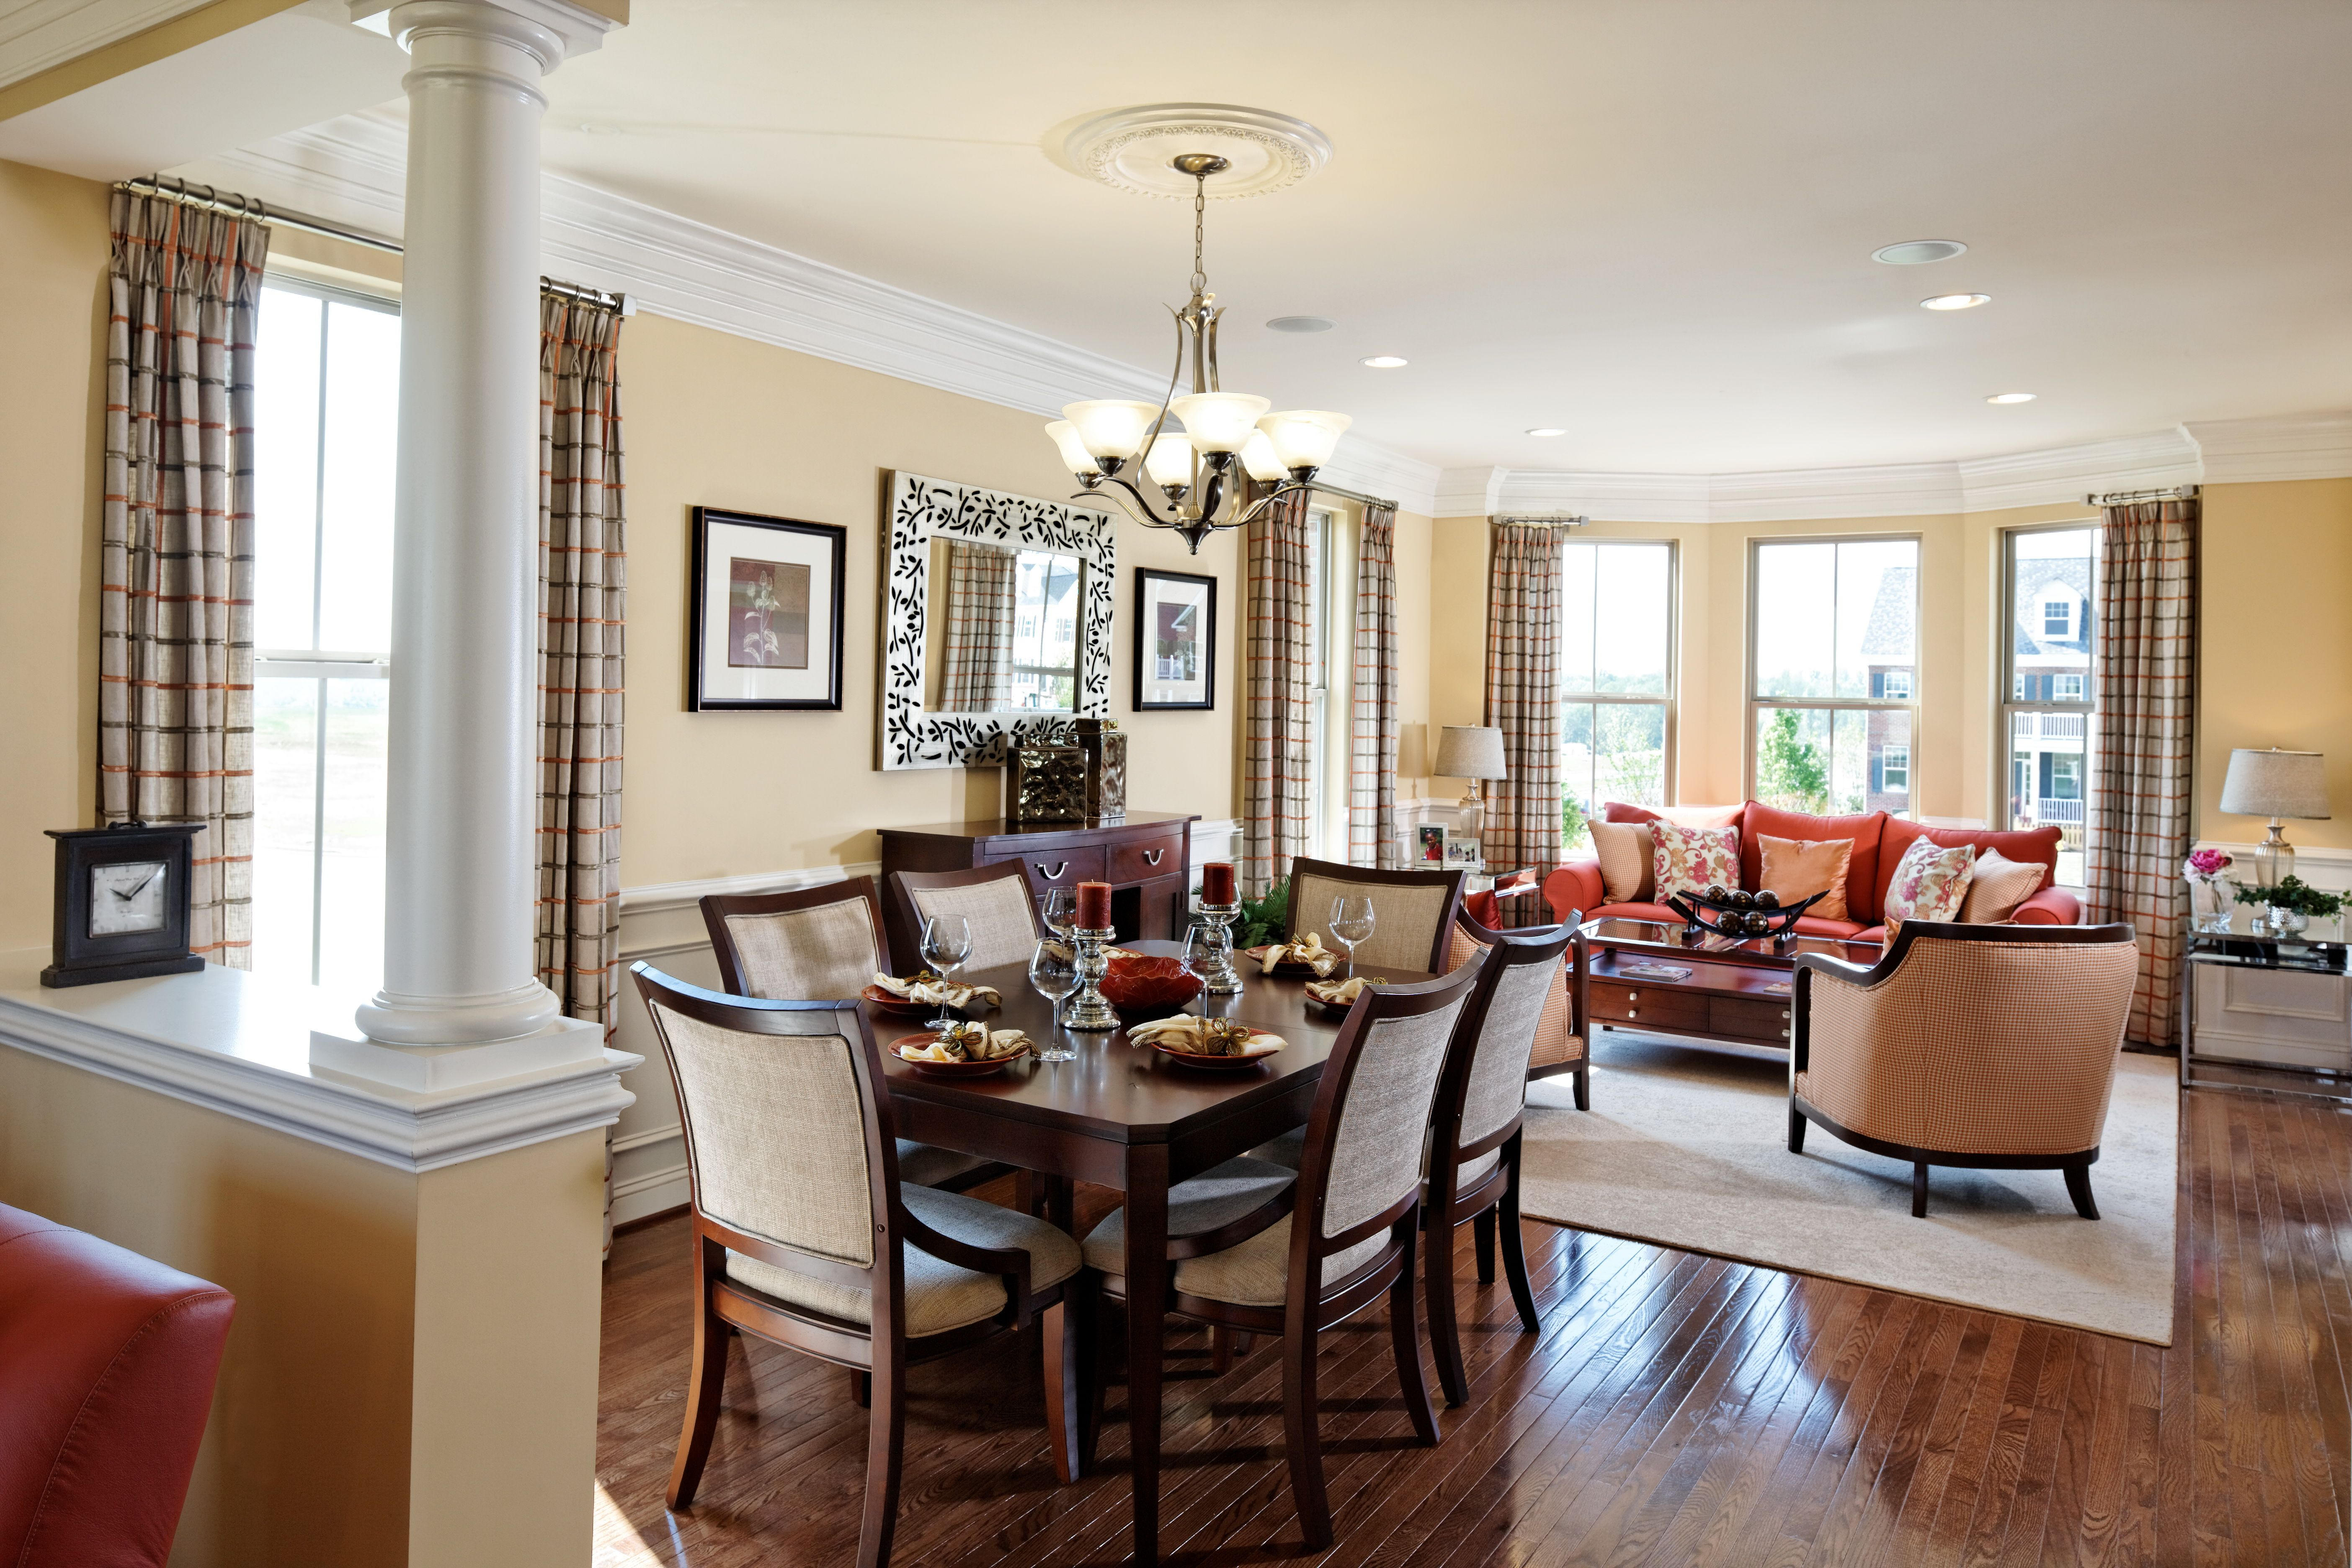 Pretty Dining Rooms What A Pretty Dining Room Httpwww.clarksburgvillage